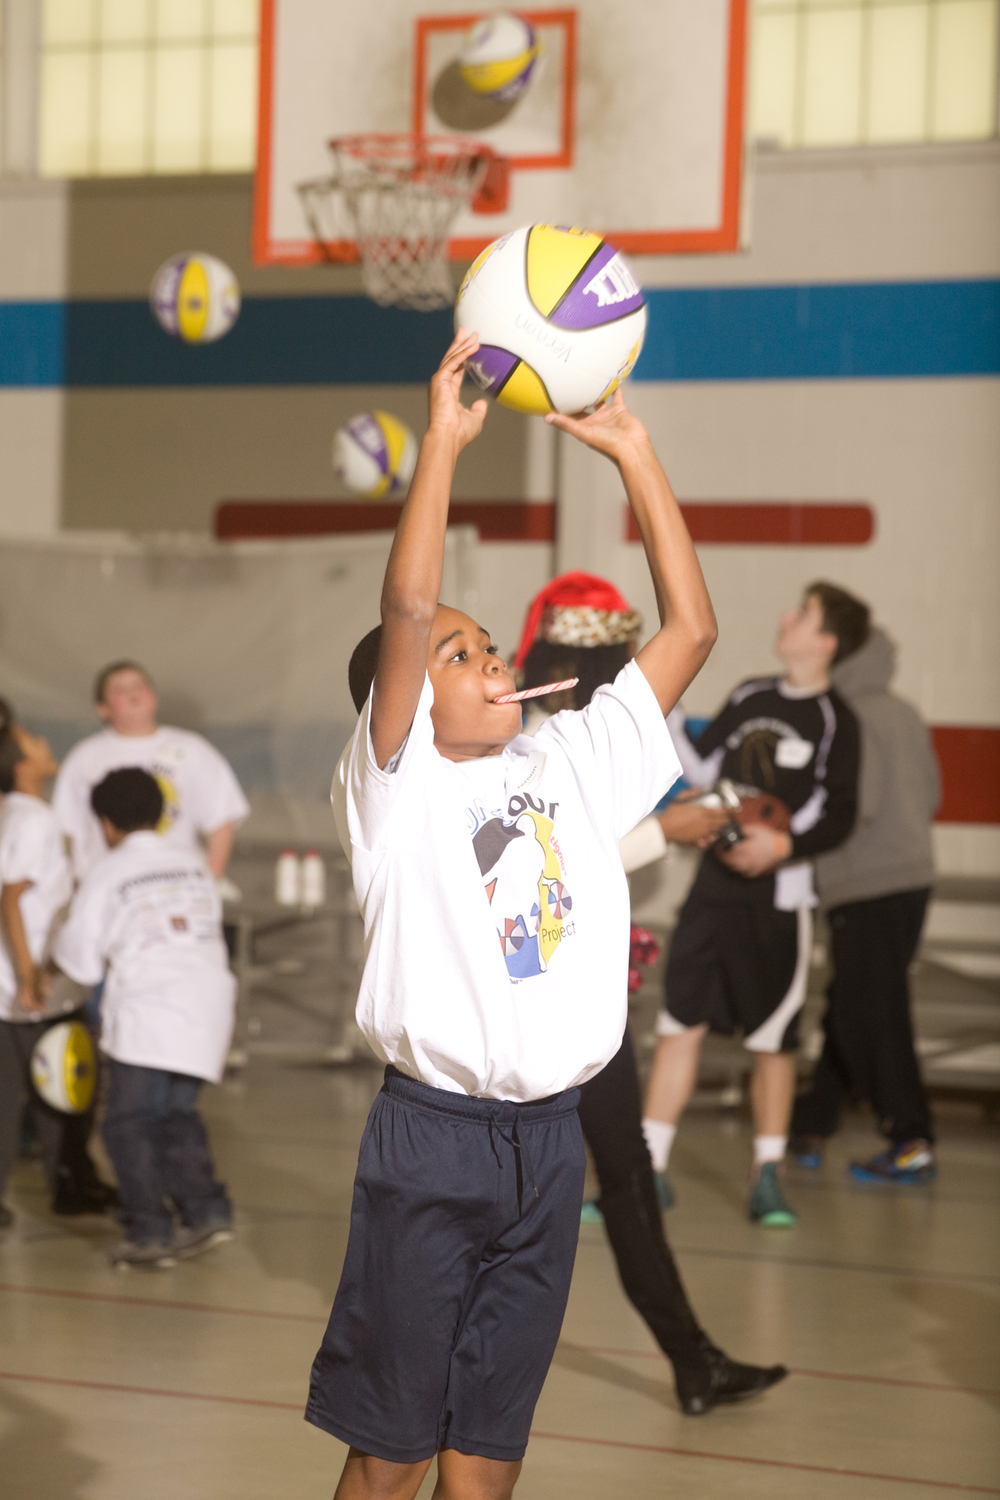 Bounce out the Stigma basketball camp in New Castle, Delaware on December 13, 2014